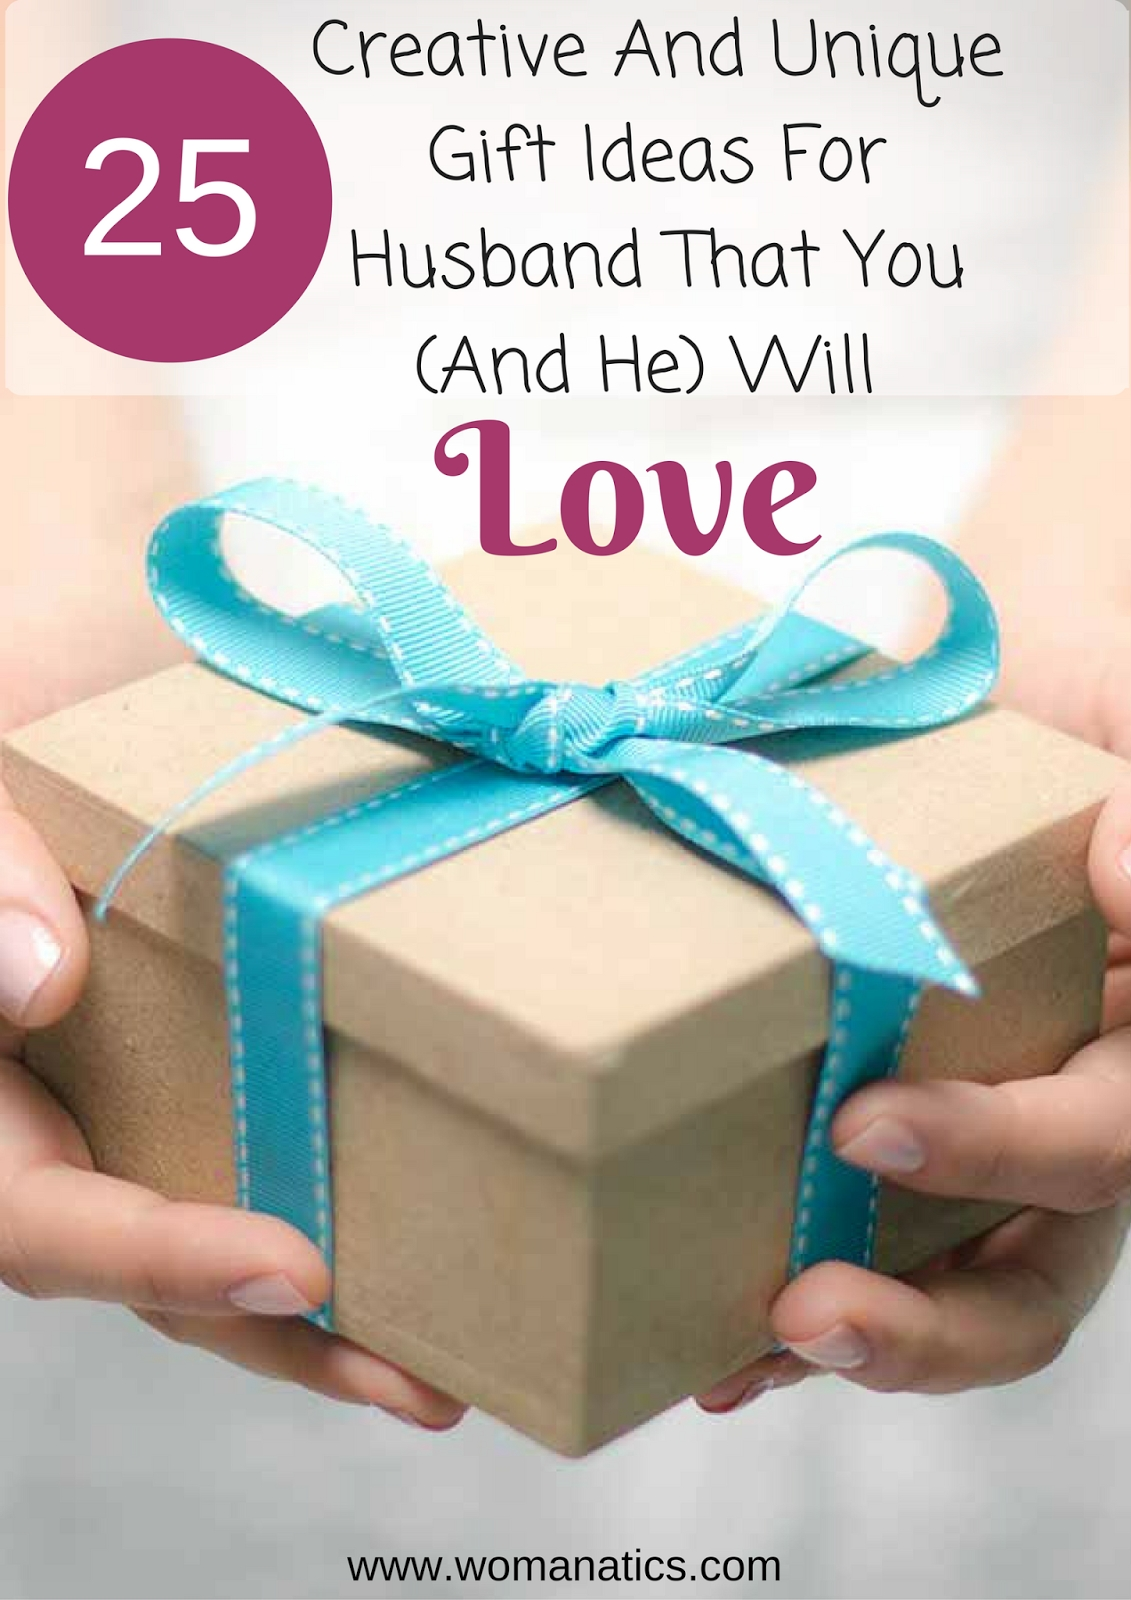 10 Attractive Bday Gift Ideas For Him 25 creative and unique gift ideas for husbands birthday that you 8 2021